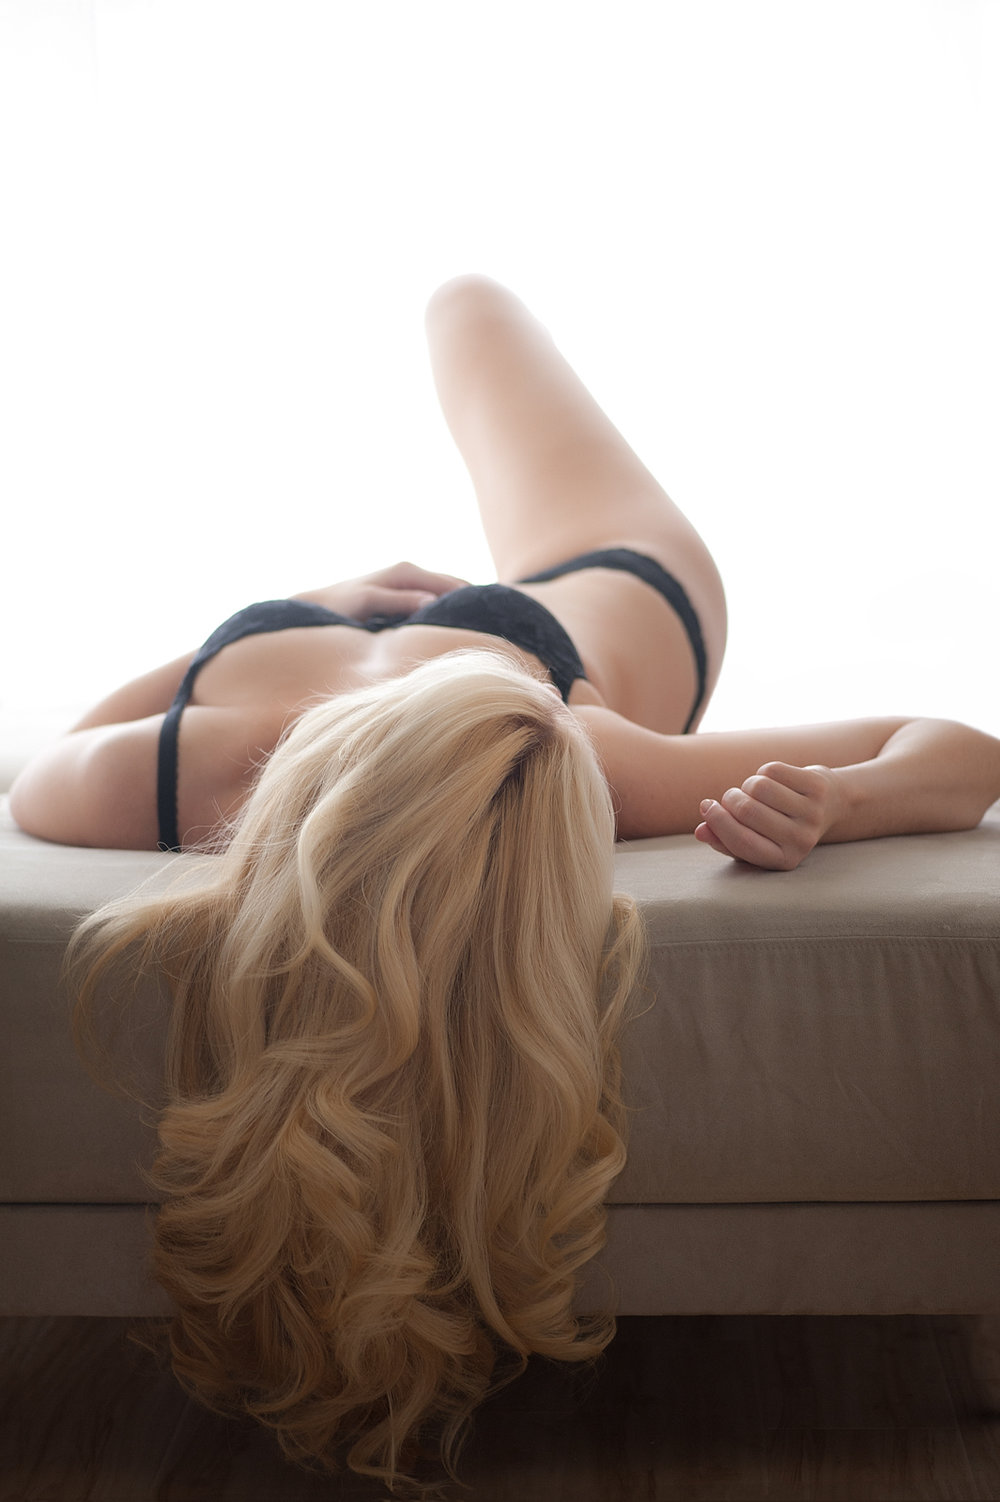 04-blonde-woman-silhouette-draping-hair-boudoir.jpg